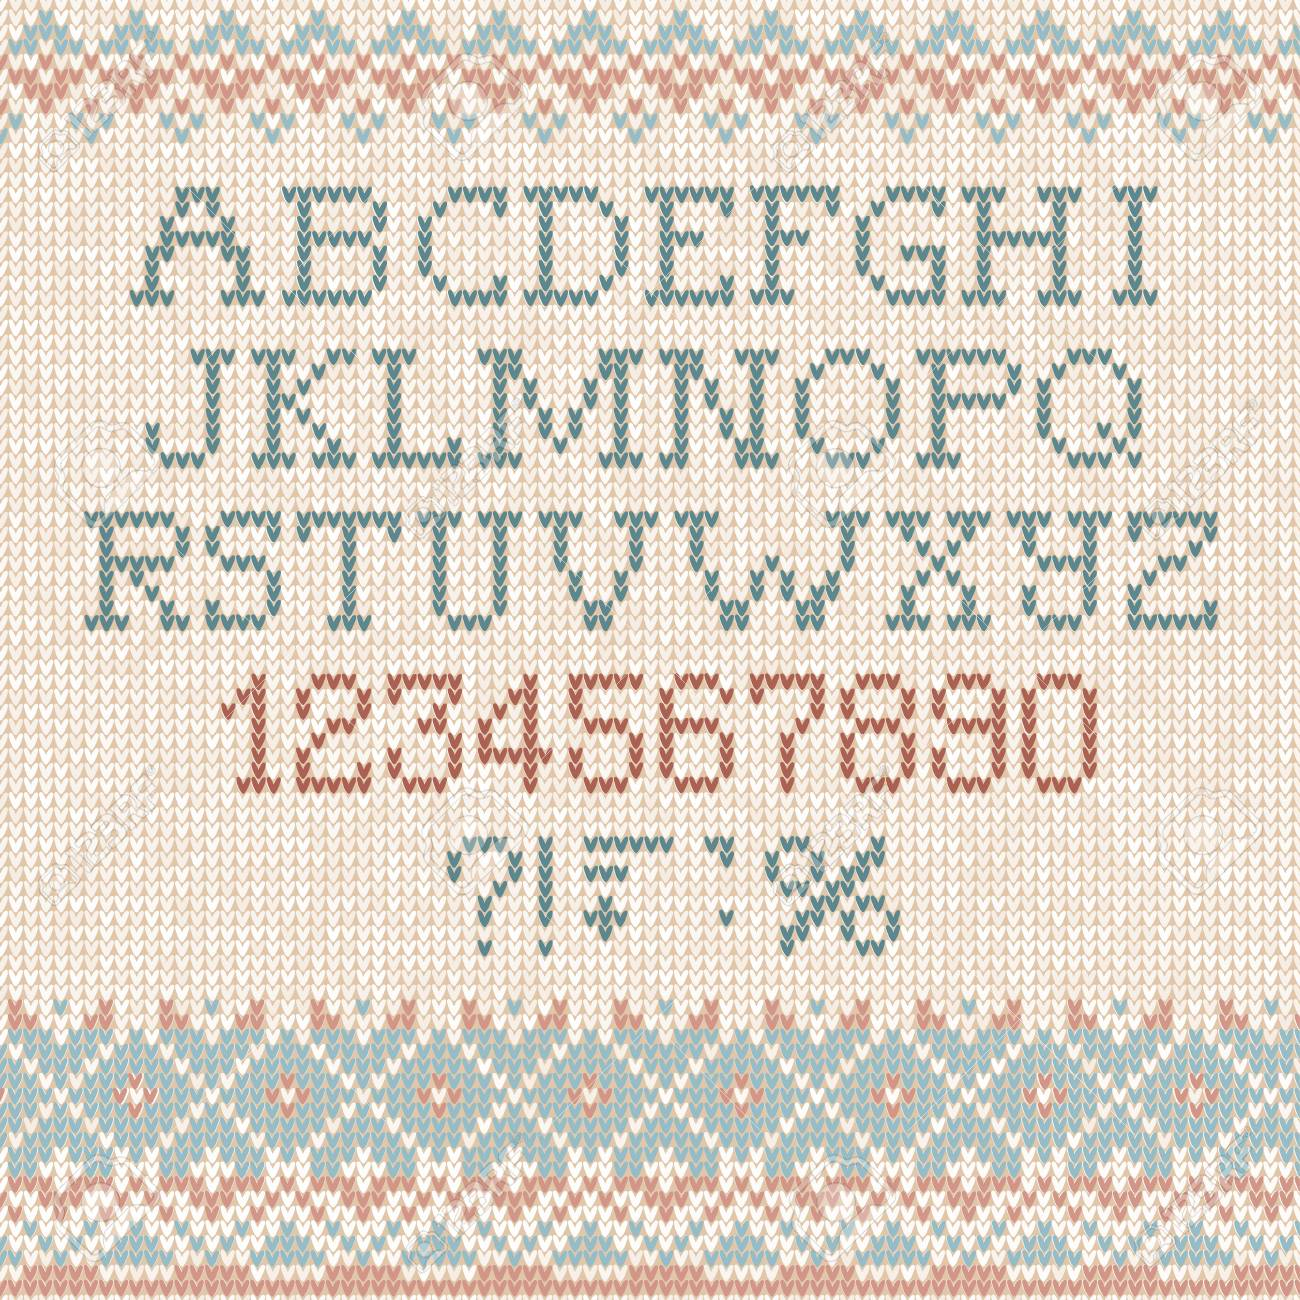 Handmade Knitted Pattern With Font Alphabet Letters And Numbers ...